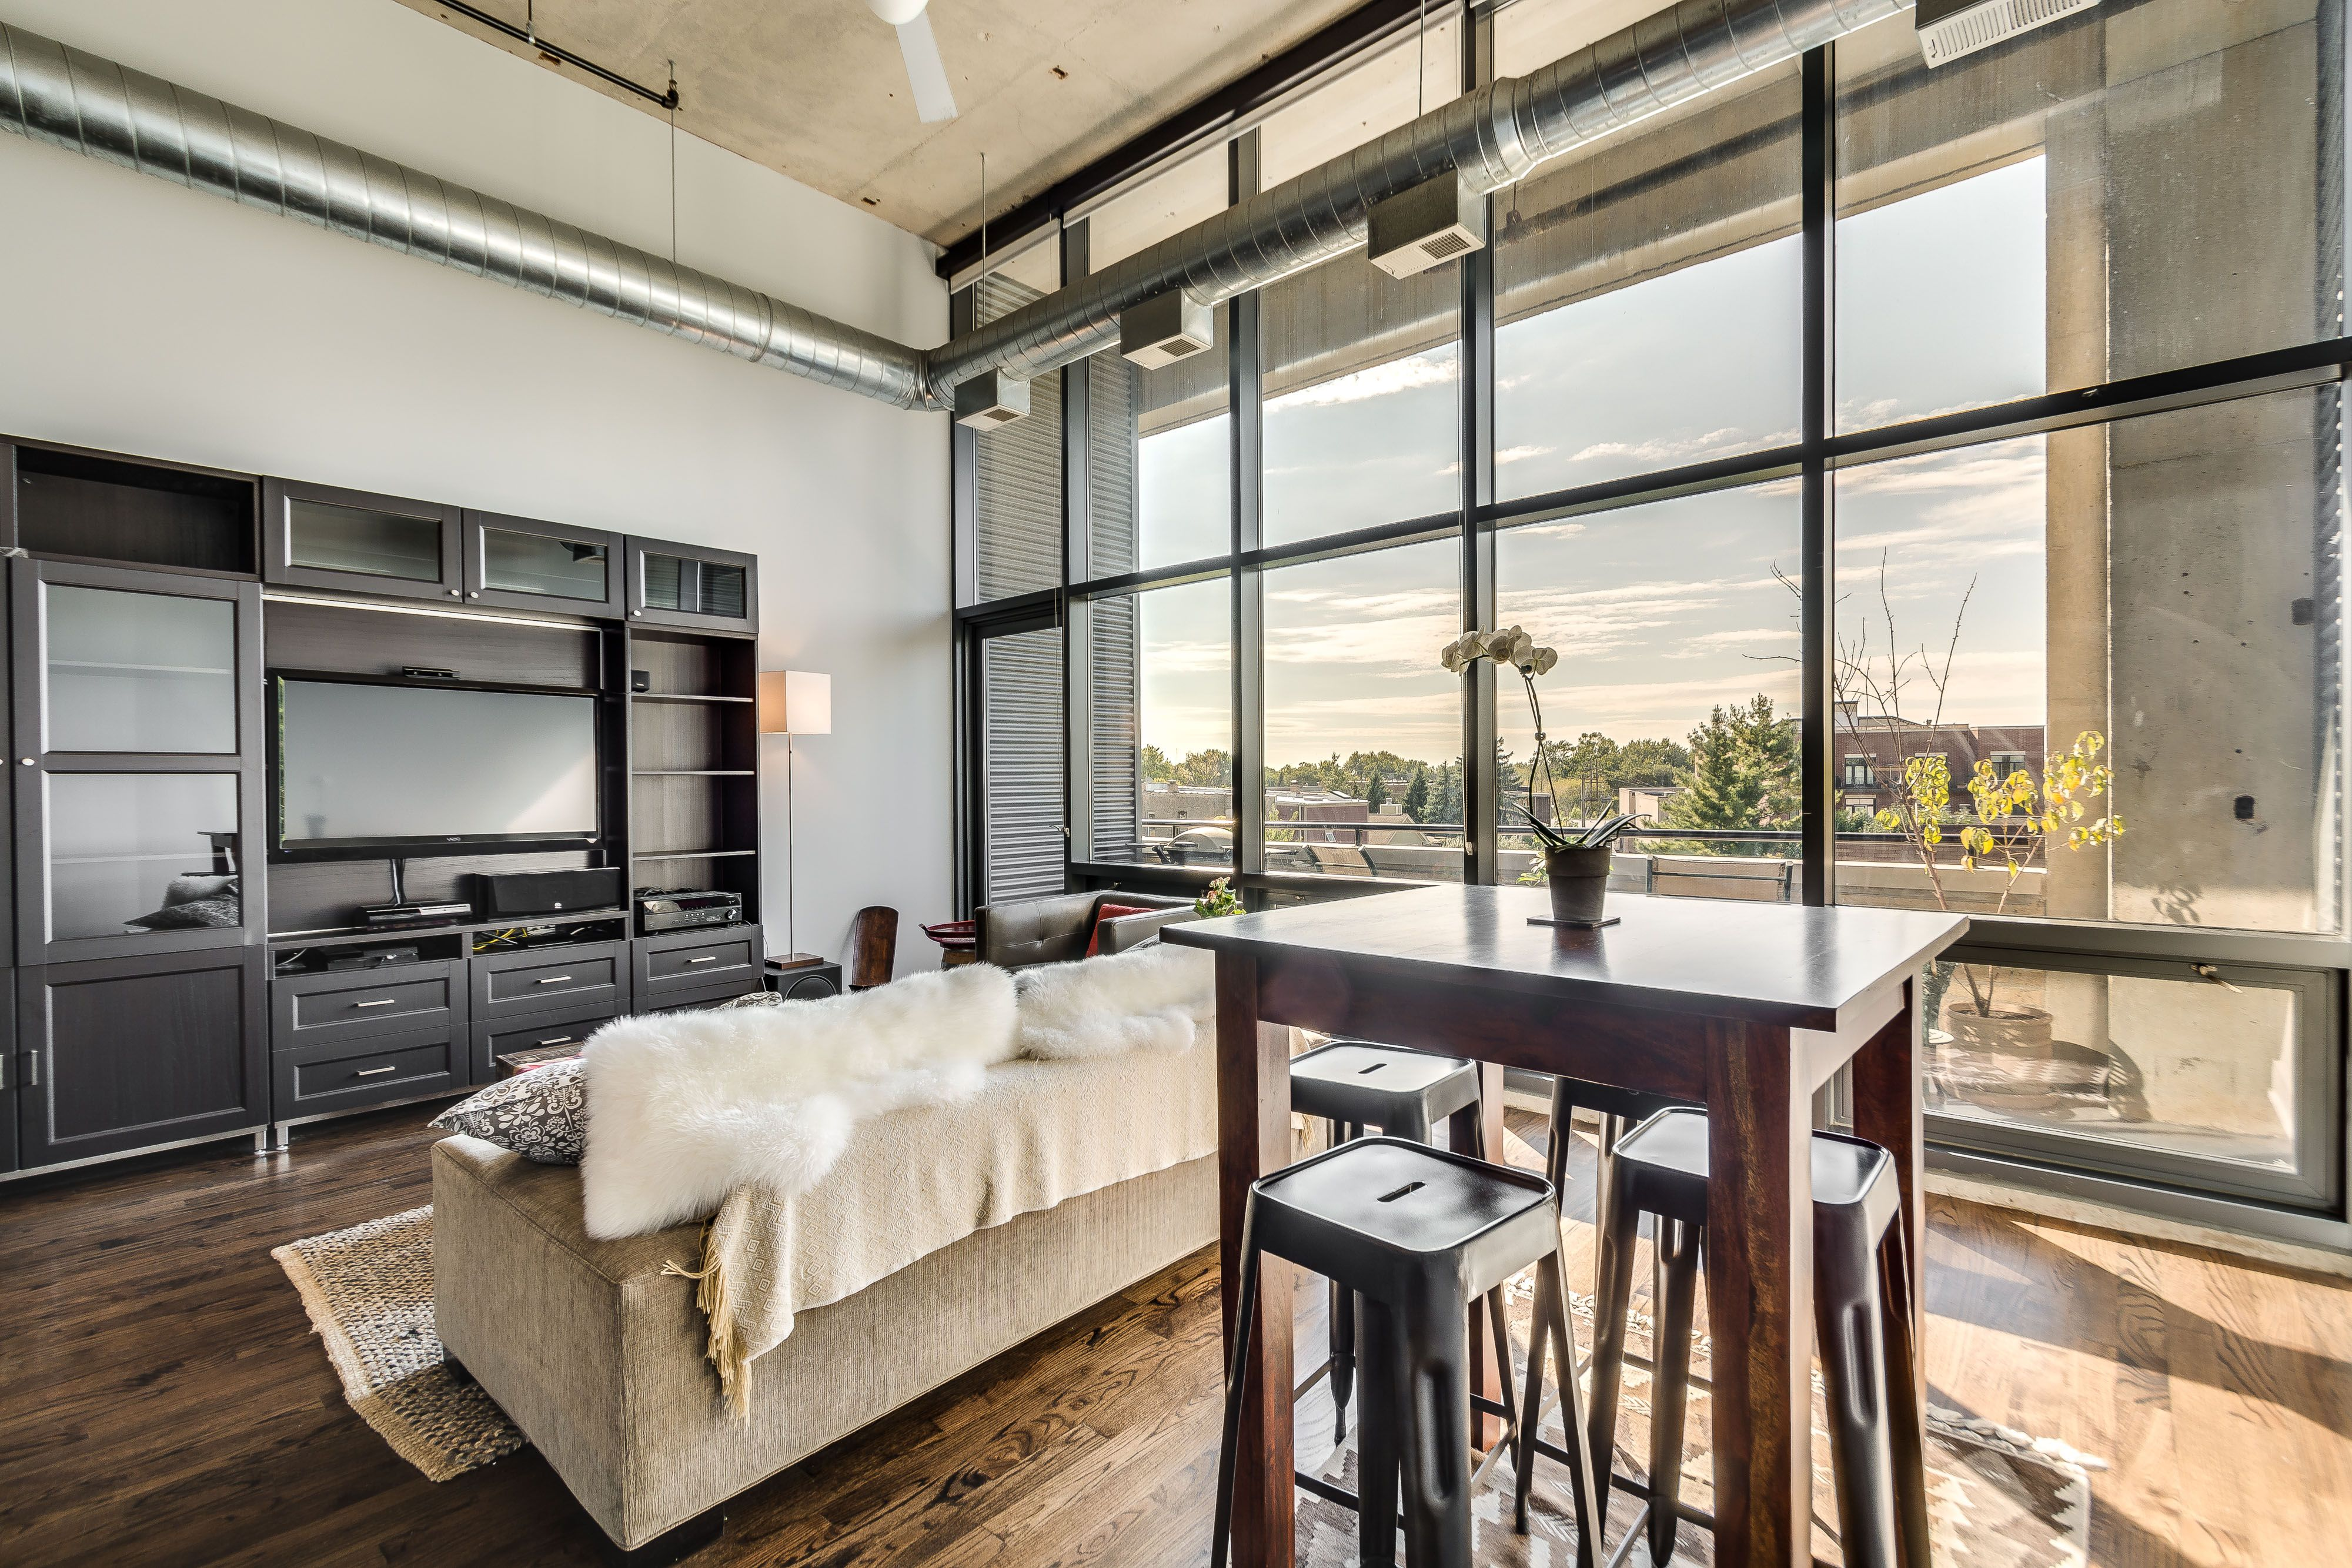 A terrace off the living room provides a space for grilling in the summer at this loft on the north side. #loft #loftliving #chicago #lakeview #northcenter #chicagorealestate #apartment